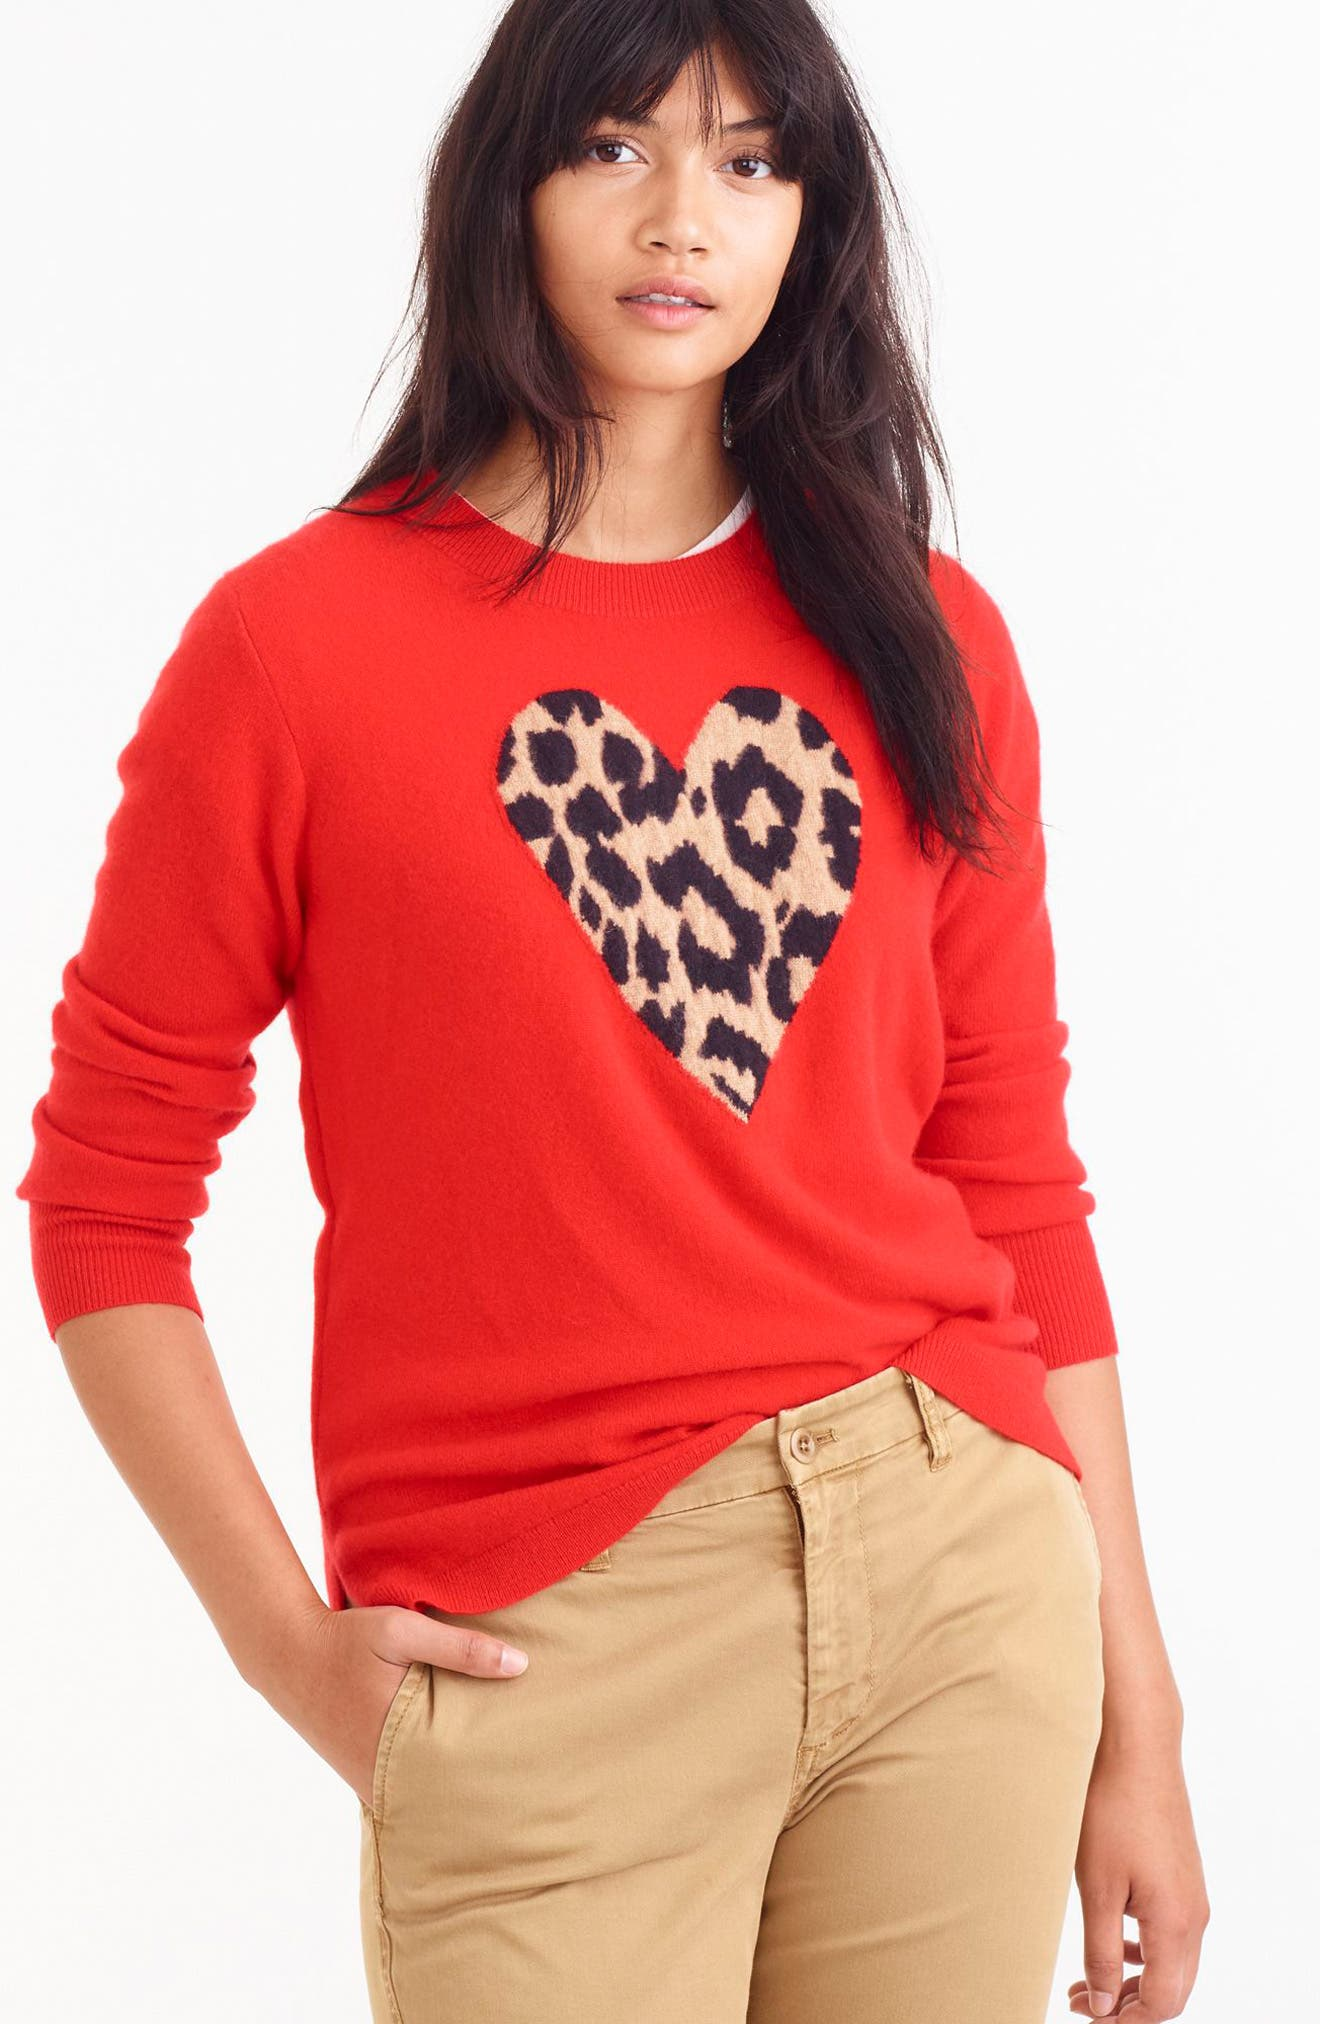 Leopard Heart Everyday Cashmere Sweater,                             Alternate thumbnail 10, color,                             600